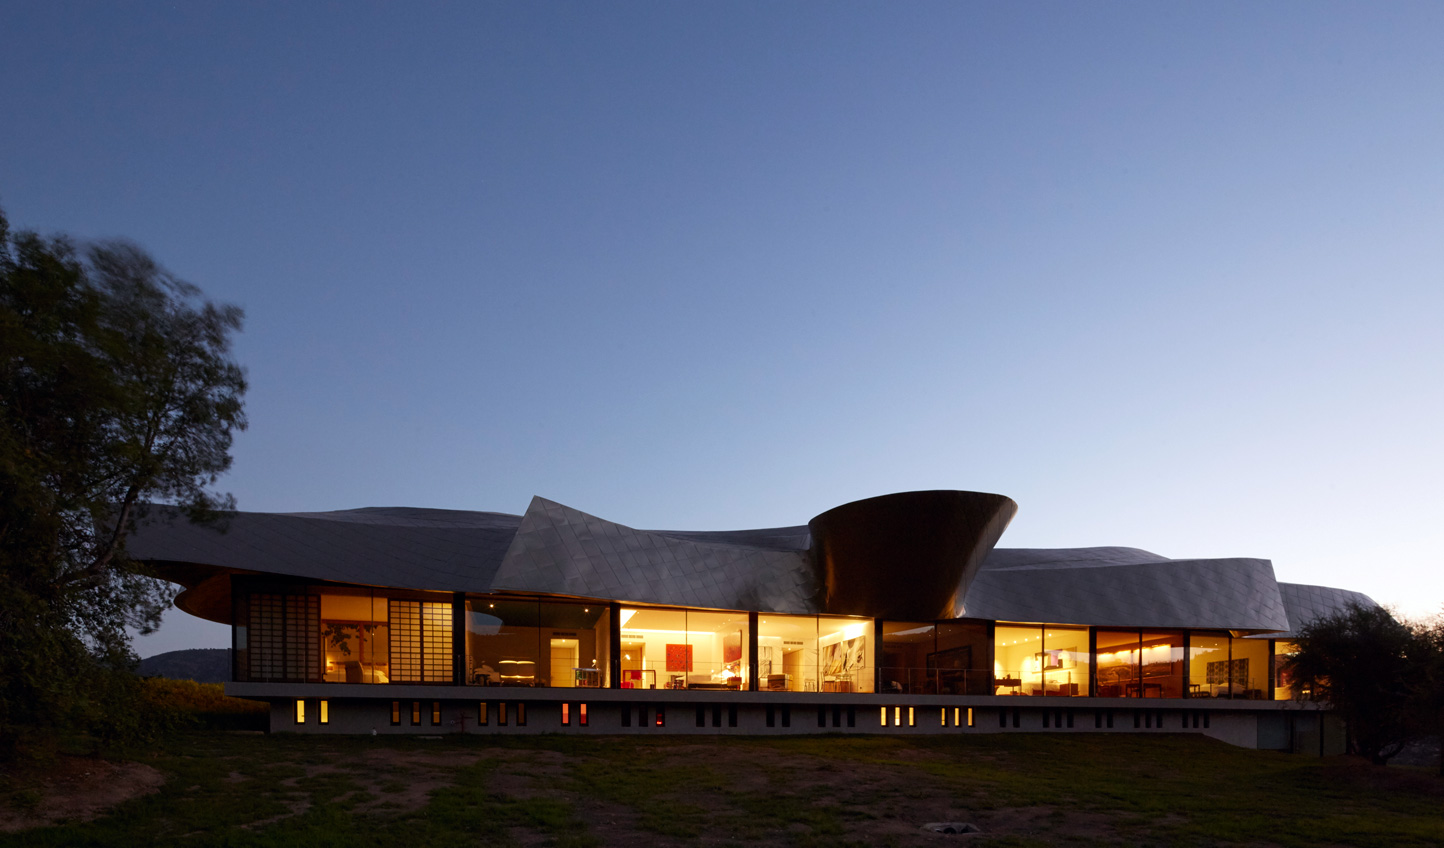 Statement architecture against the natural backdrop of the Colchagua Valley